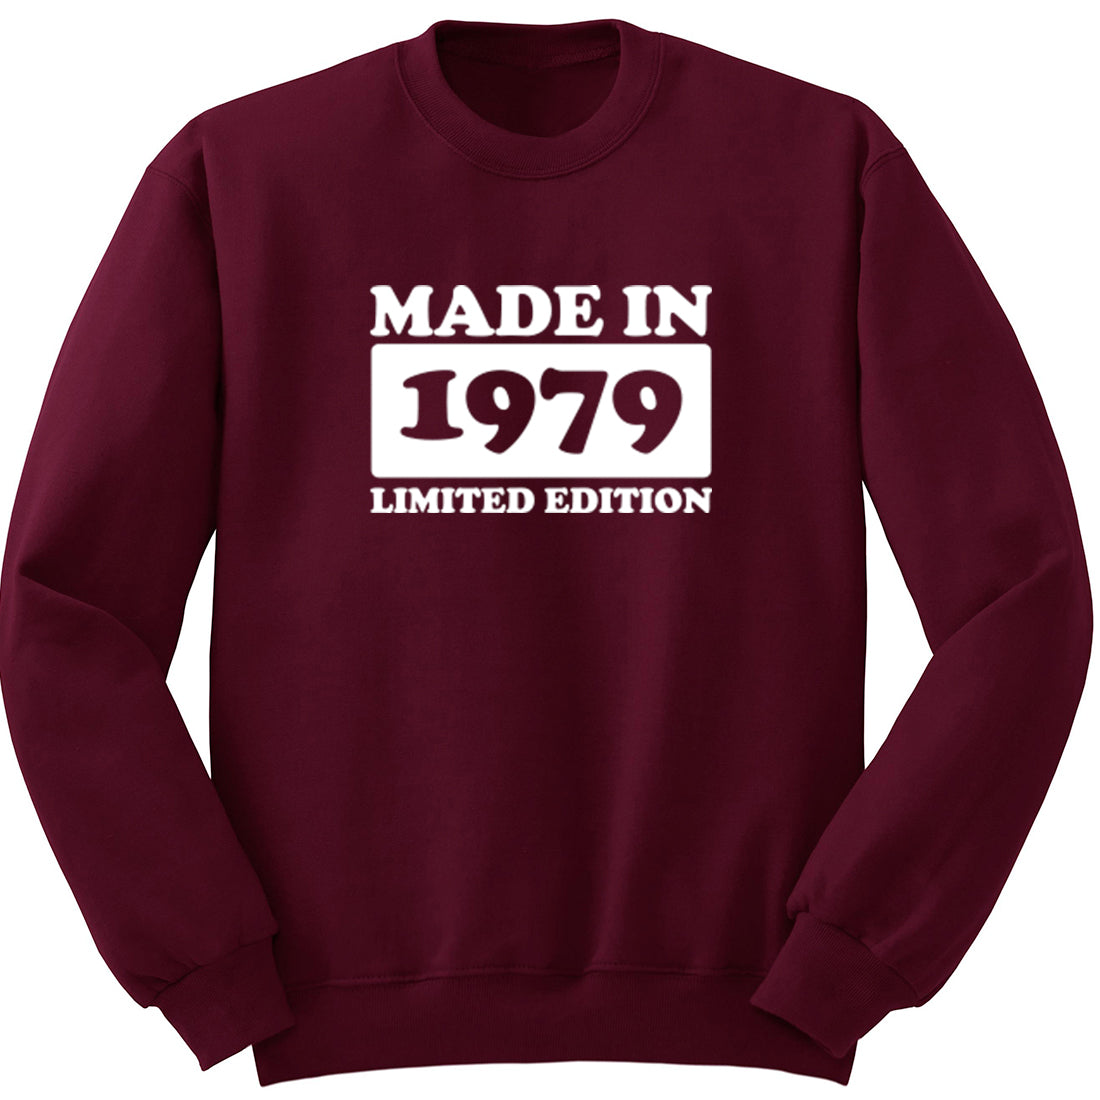 Made In 1979 Limited Edition Unisex Jumper K1936 - Illustrated Identity Ltd.